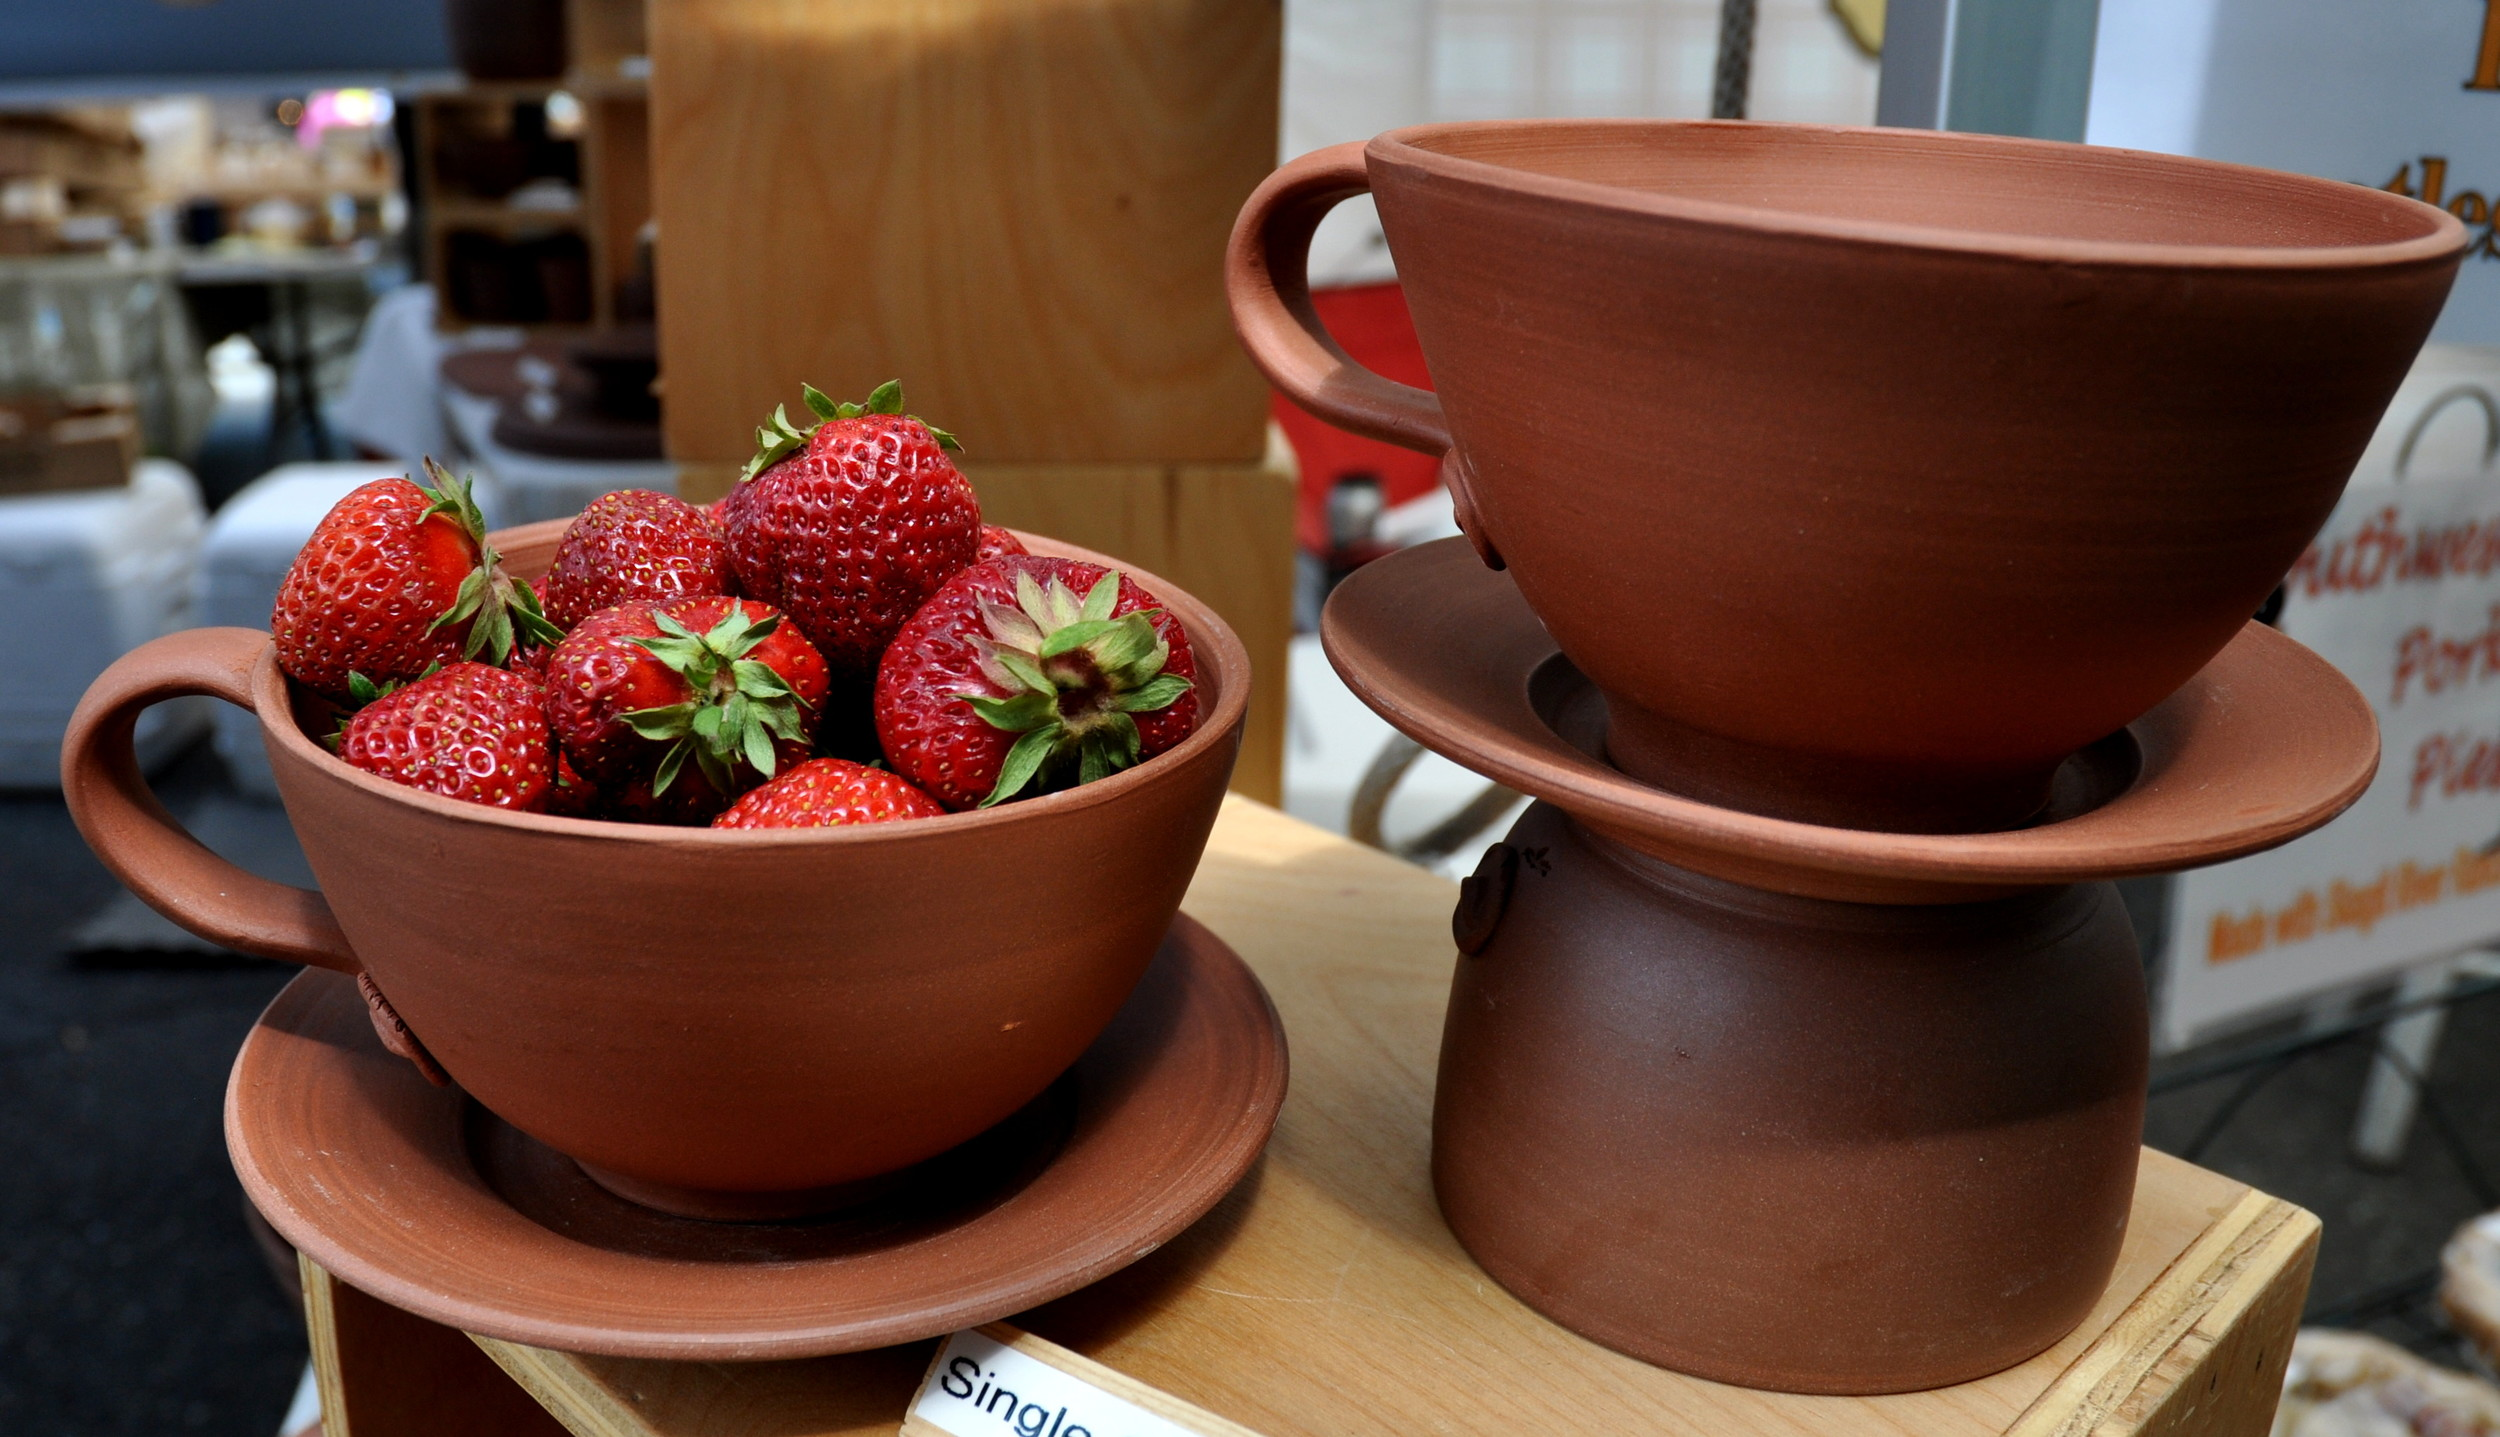 Single serving colanders from Daily Bird Pottery. Photo copyright 2013 by Zachary D. Lyons.